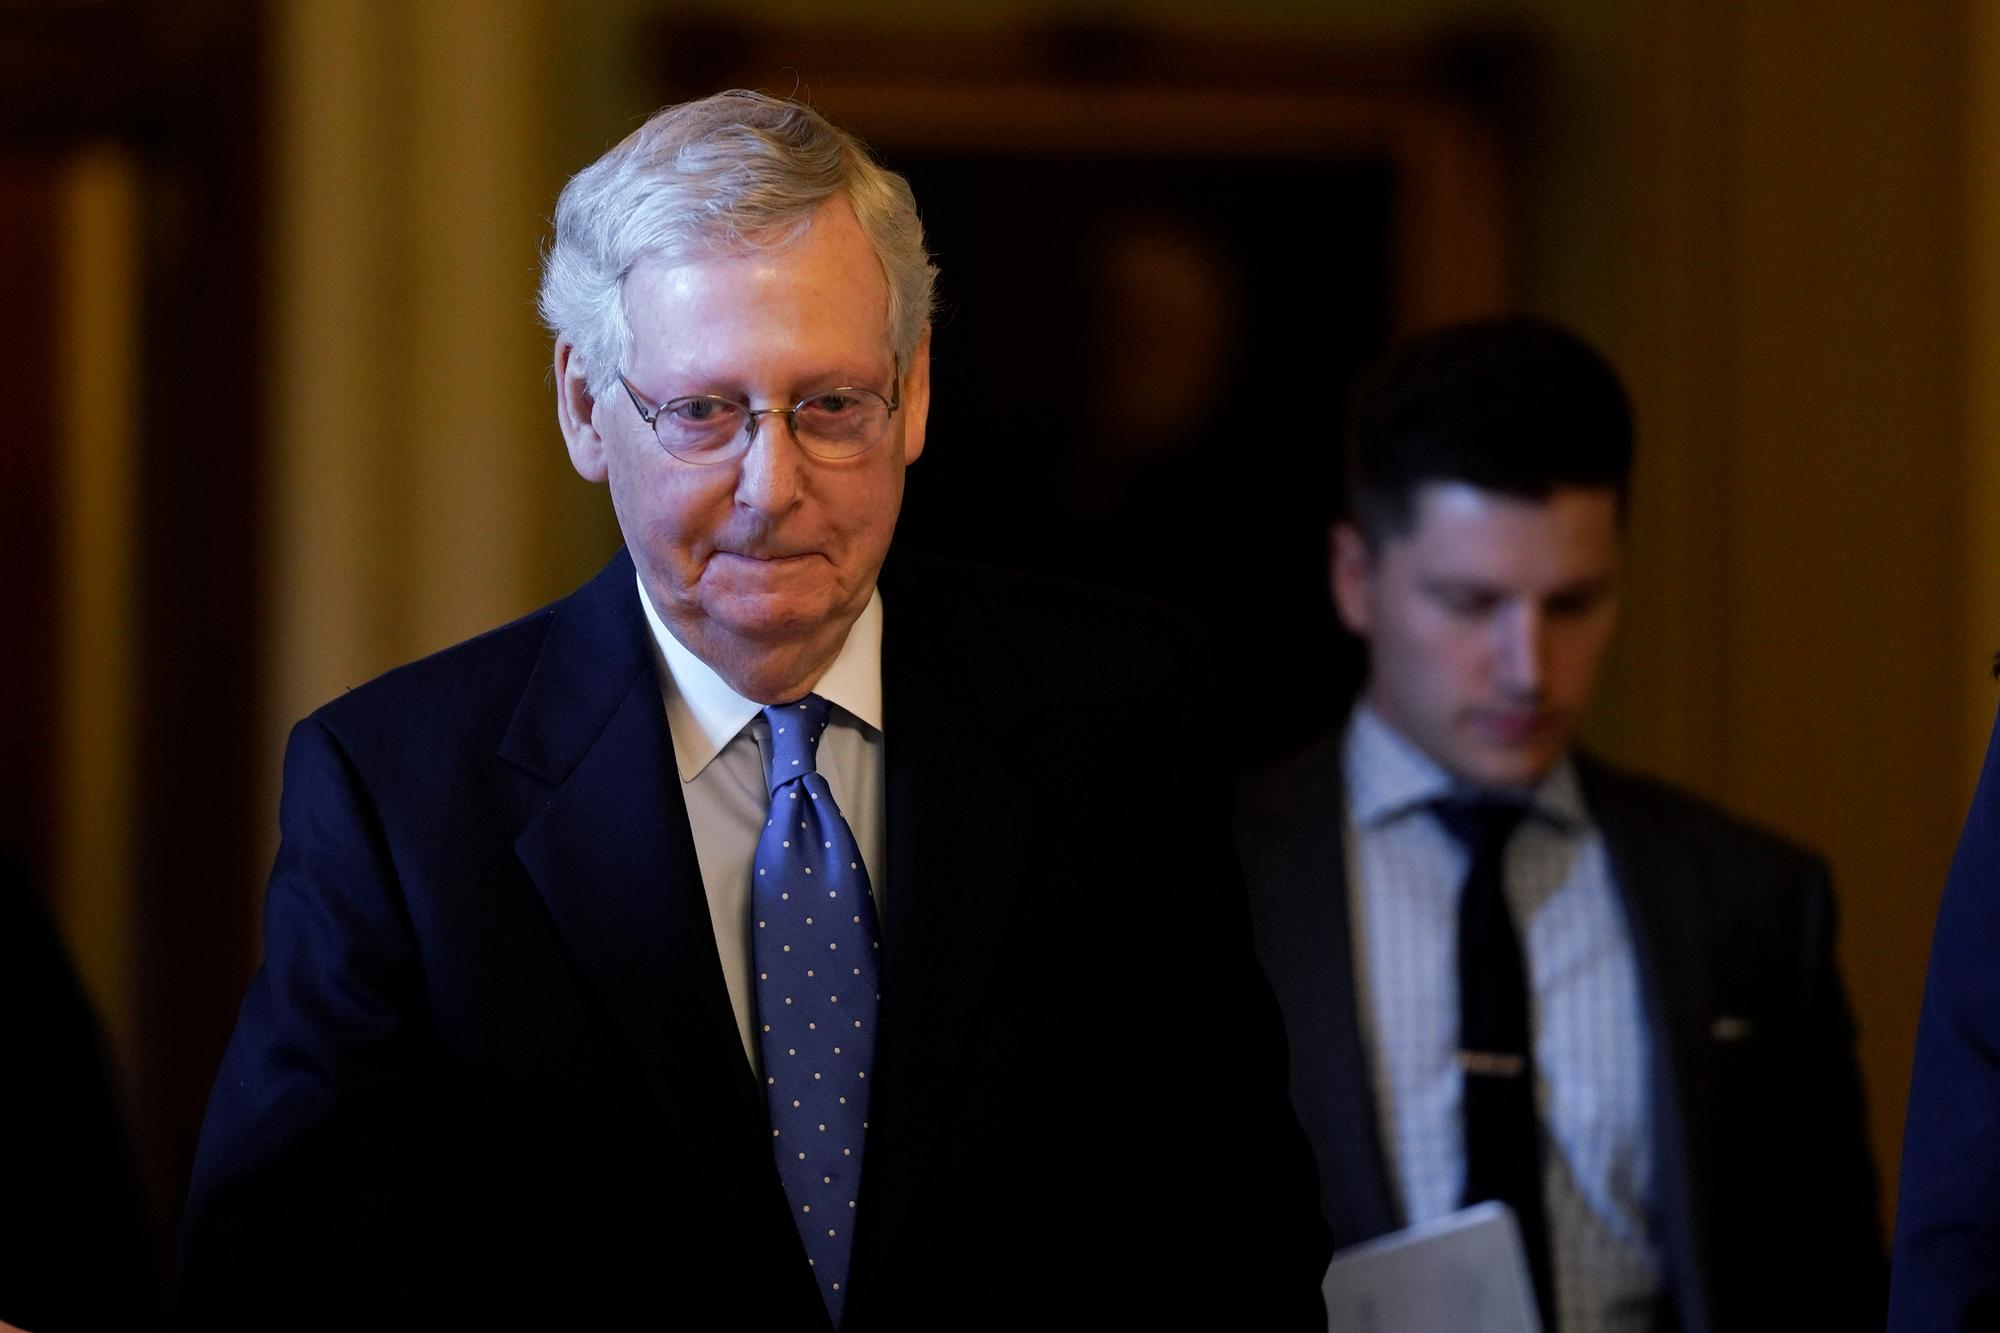 McConnell says 'not much support' for Mexico tariffs among U.S. Republicans